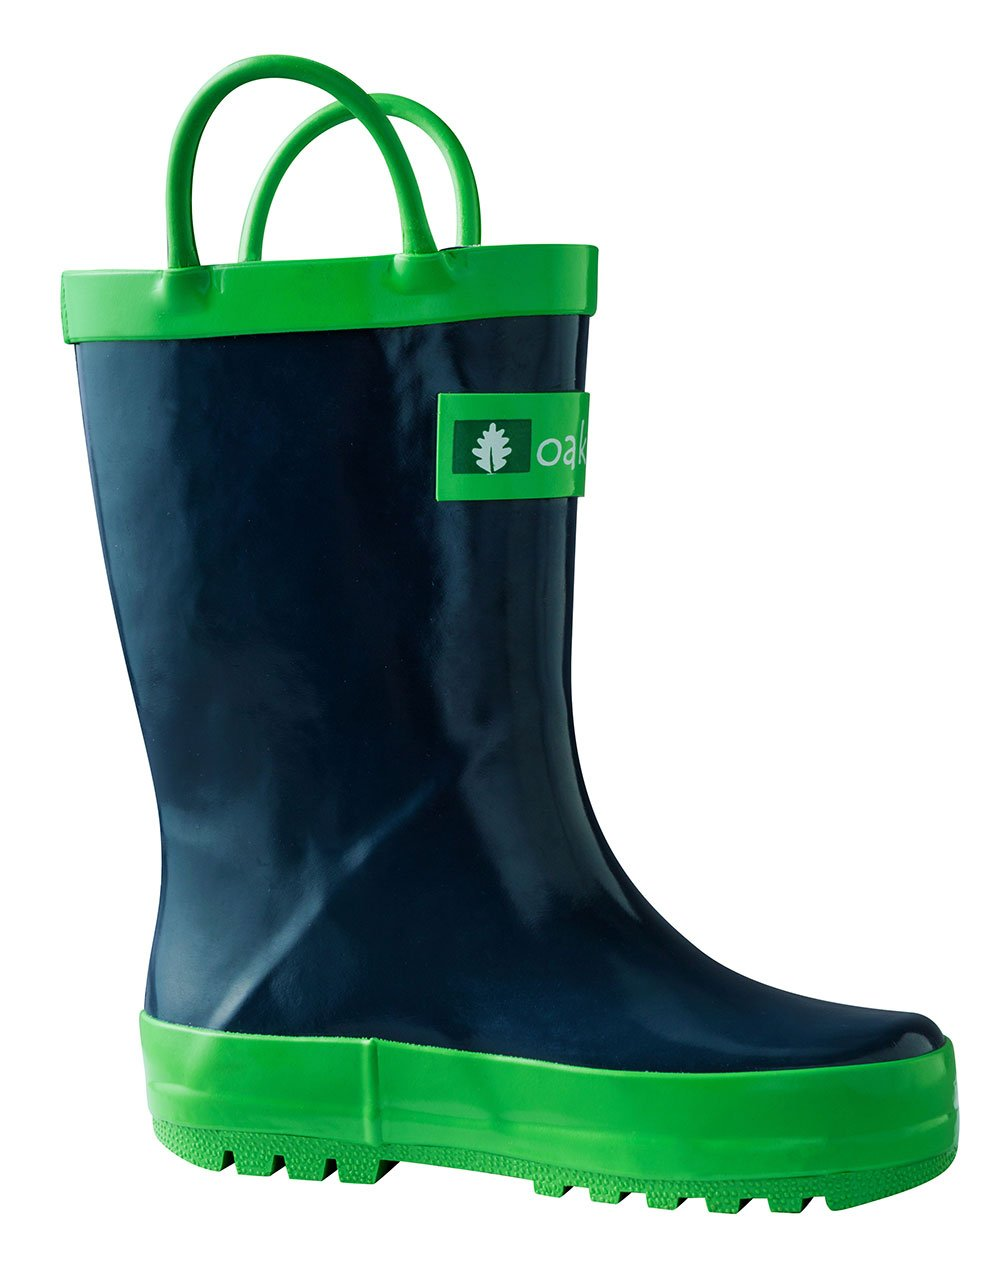 Oakiwear Kids Waterproof Rubber Rain Boots with Easy-On Handles 7